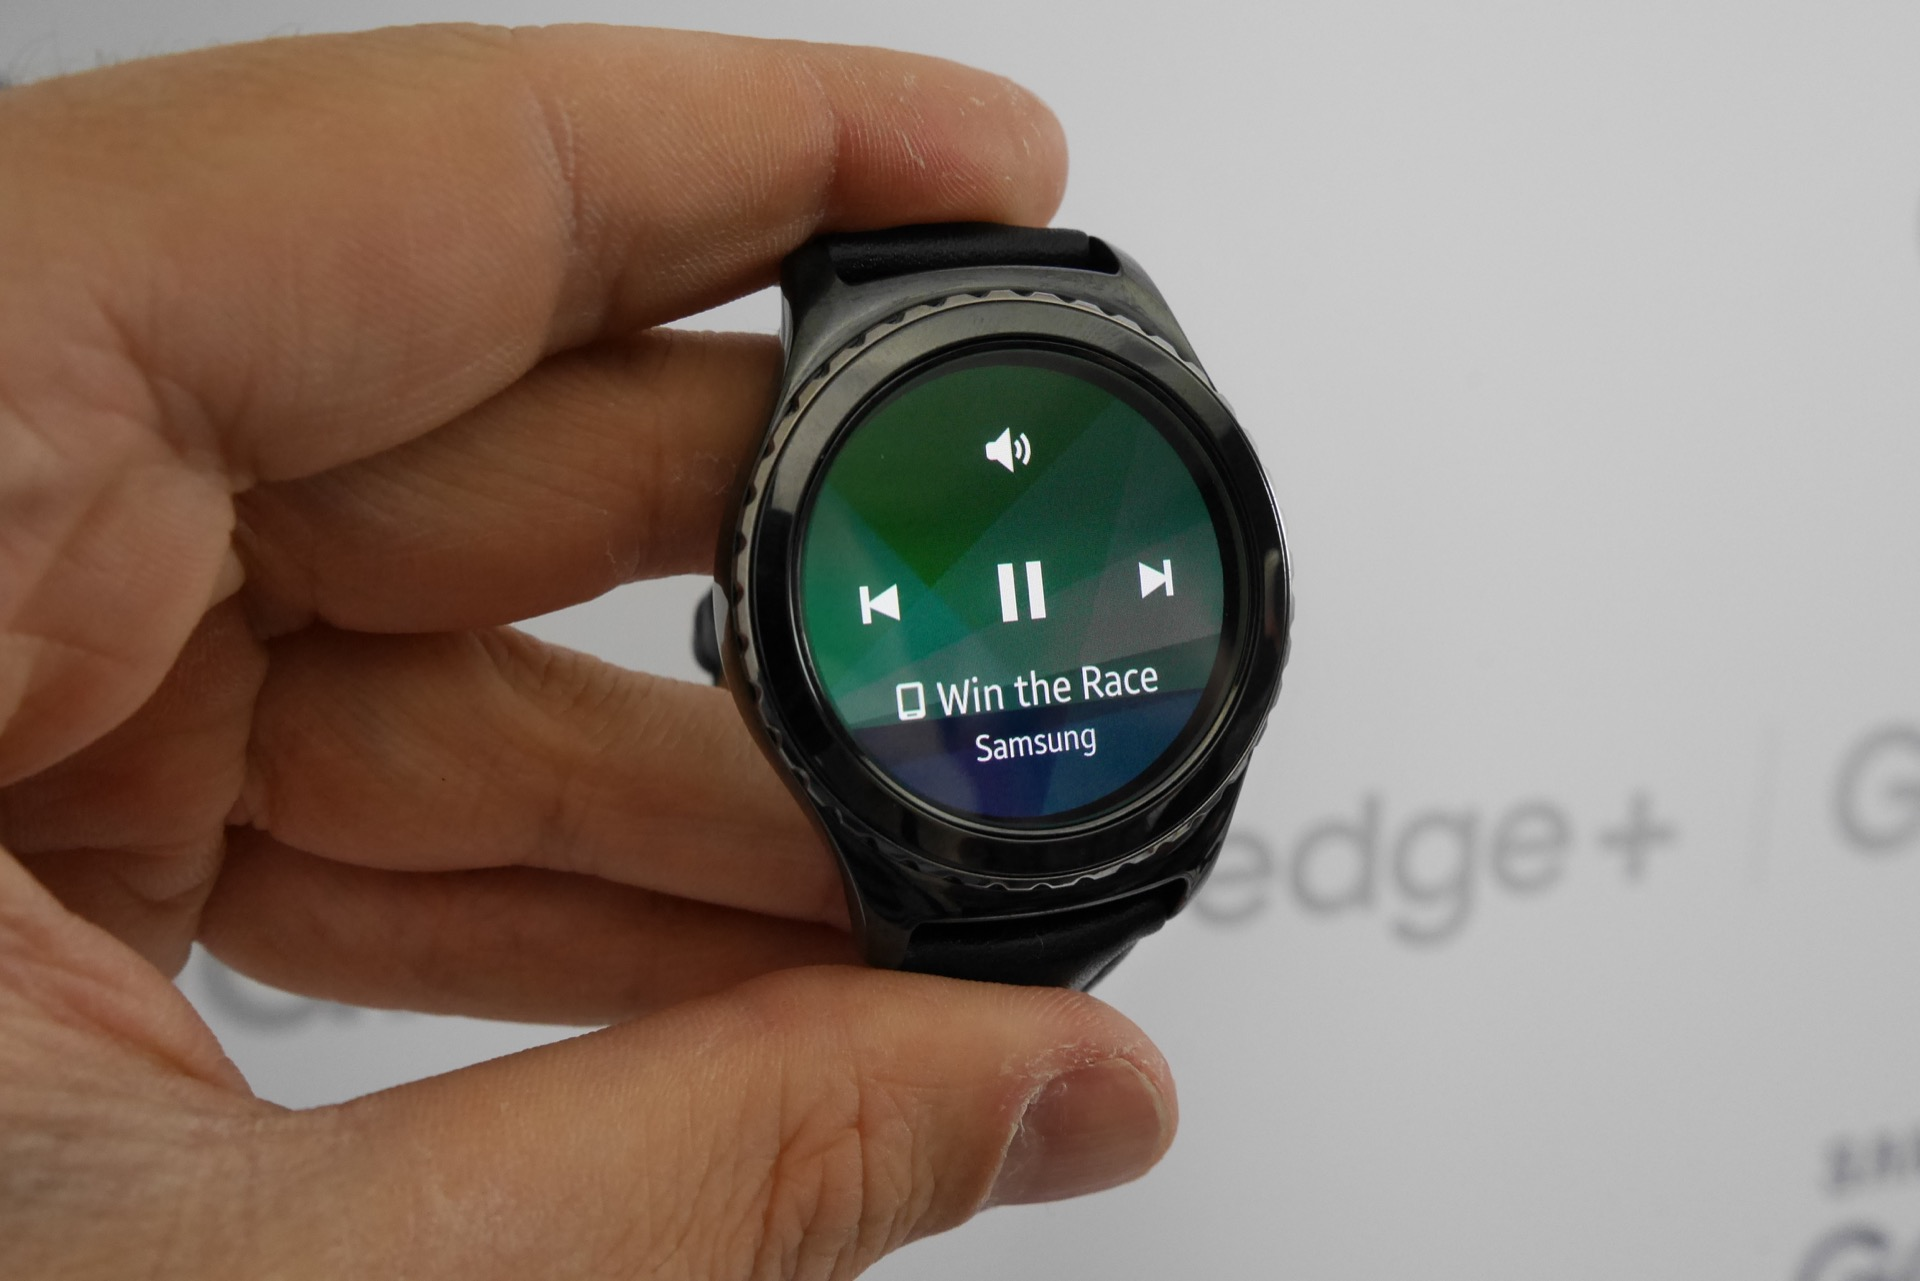 Samsung Gear S2 & Gear S2 Classic review - hands on | Expert Reviews